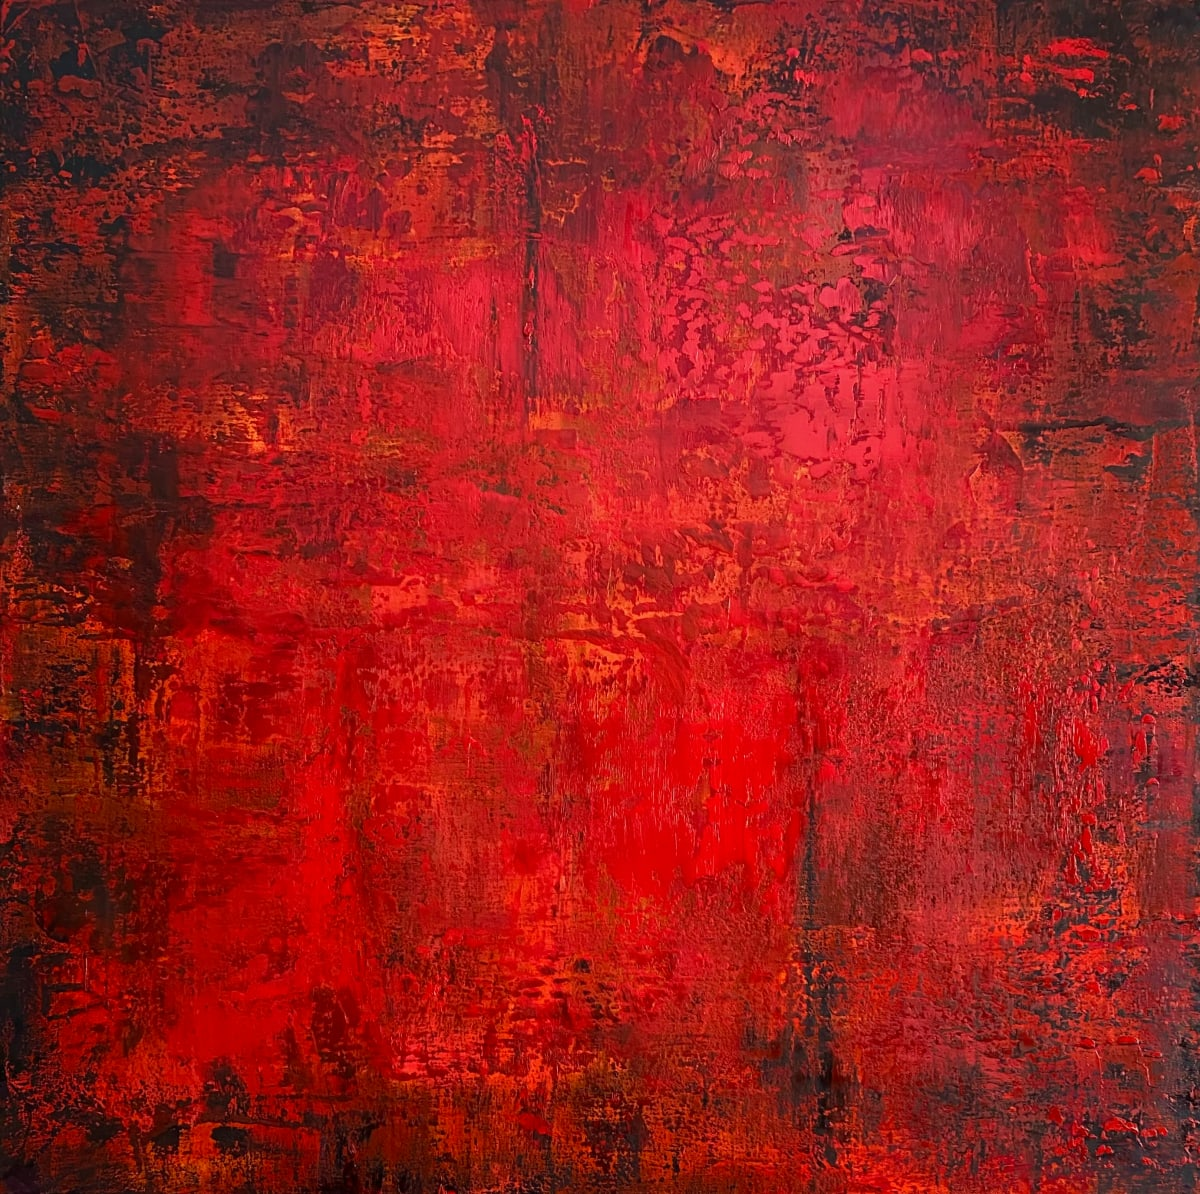 AB2146 by Ansley Pye  Image: Textural Abstract by Ansley Pye